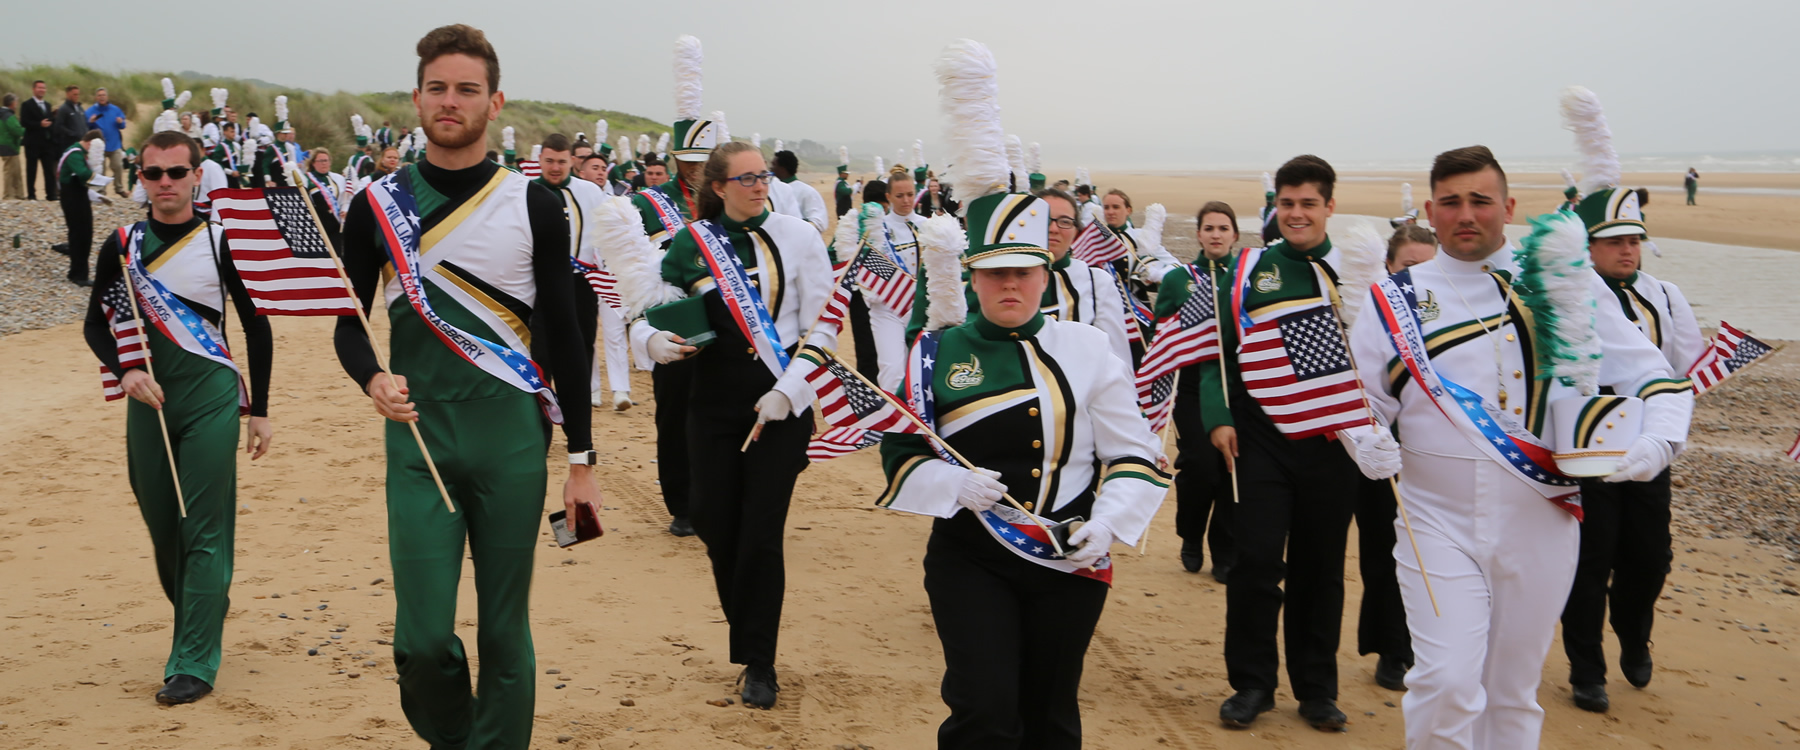 band students on the beach